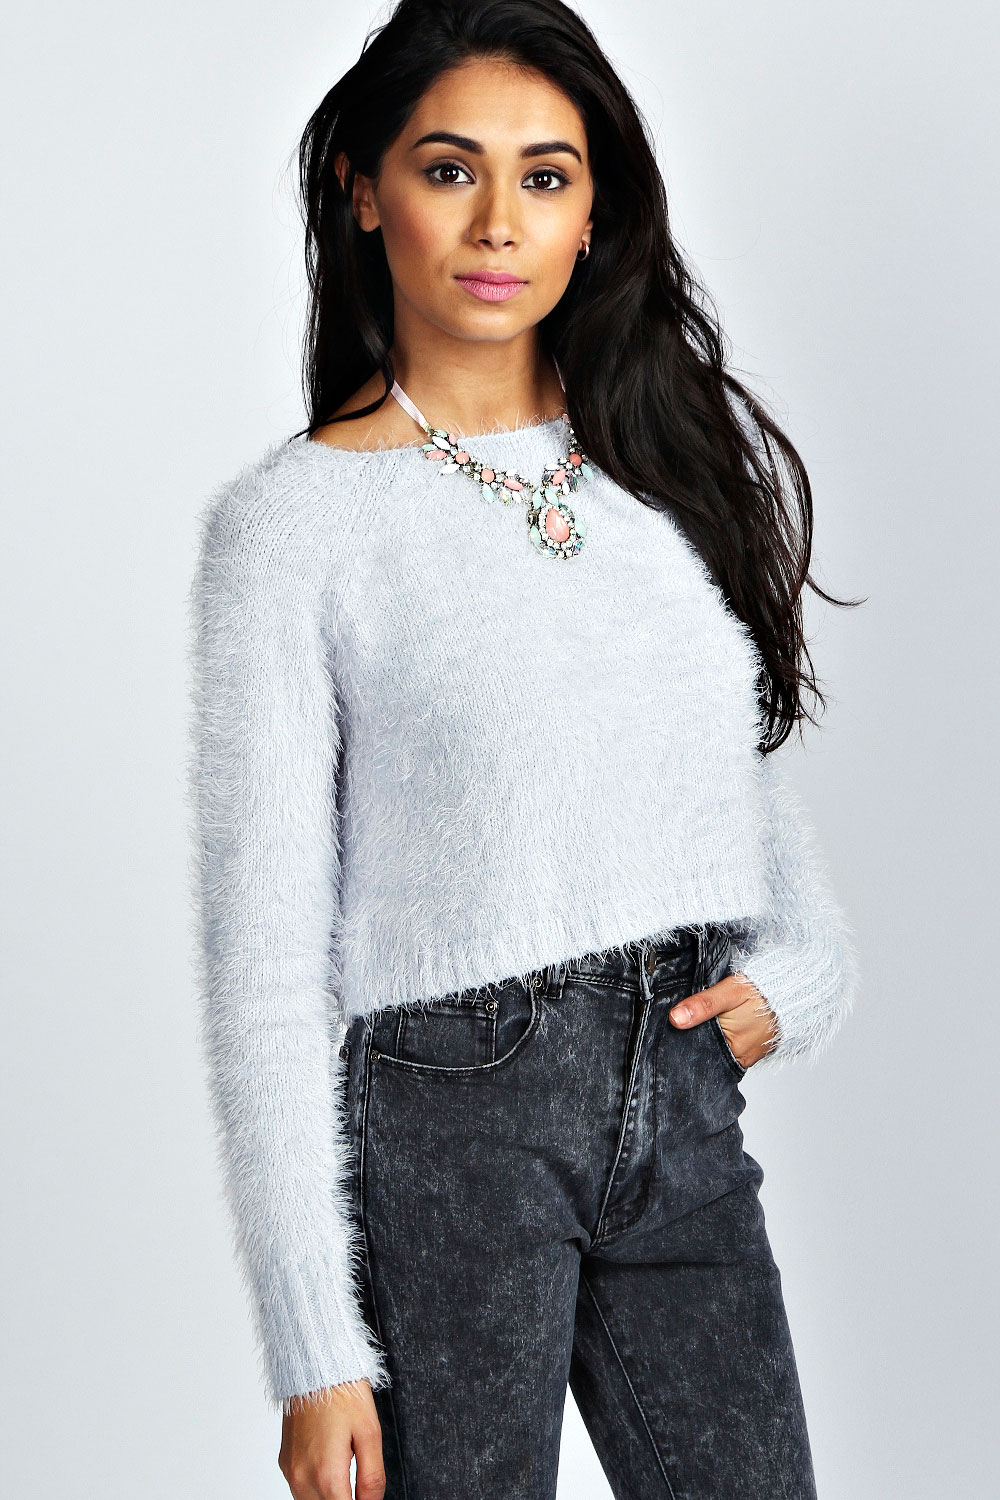 Shop for cropped sweaters online at Target. Free shipping on purchases over $35 and save 5% every day with your Target REDcard.